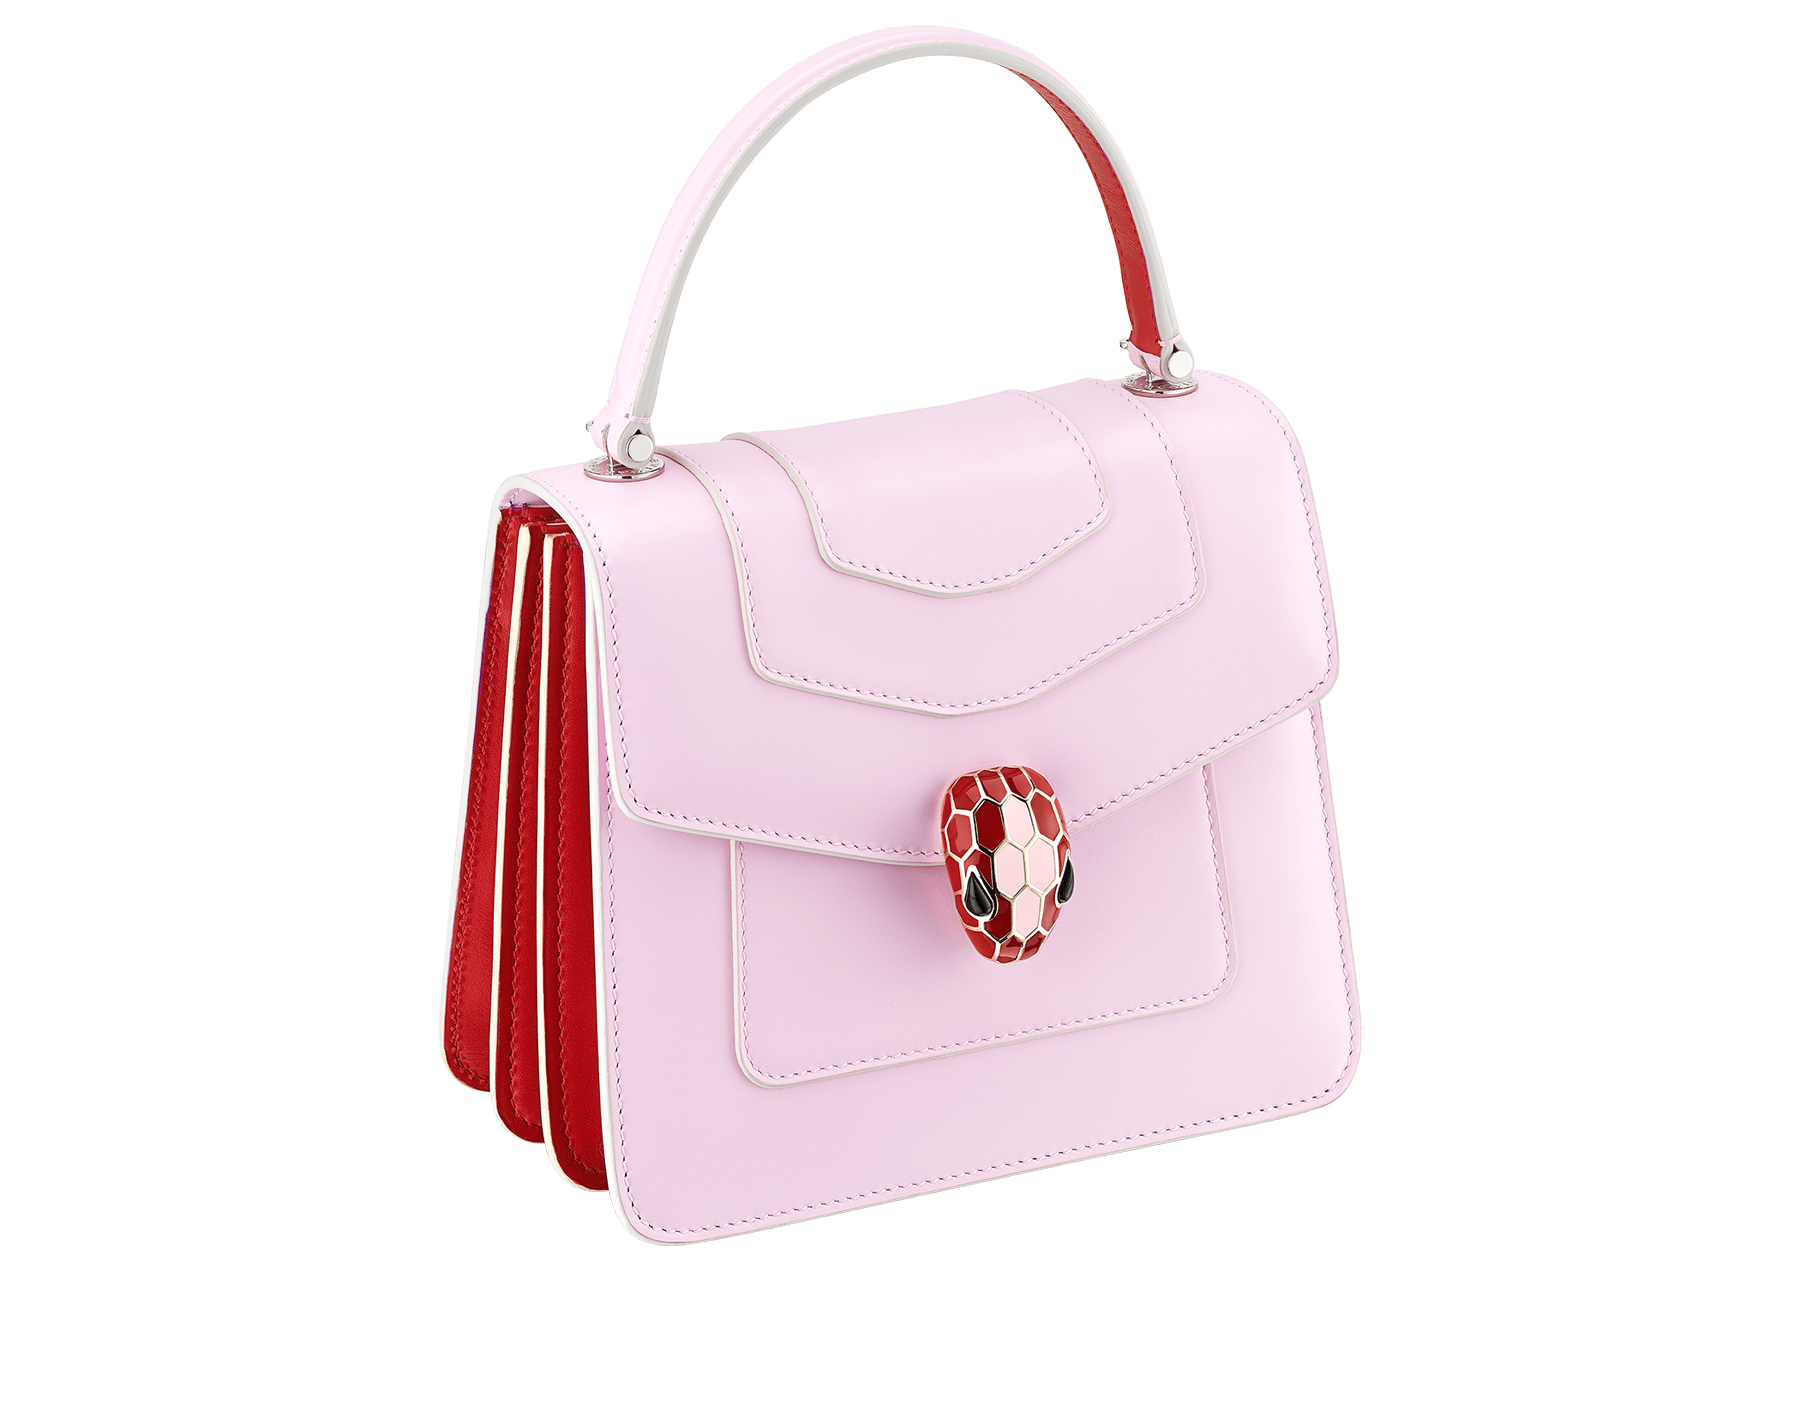 """Serpenti Forever "" crossbody bag in rosa di francia calf leather body and carmine jasper calf leather sides. Iconic snakehead closure in light gold plated brass enriched with carmine jasper and rosa di francia enamel and black onyx eyes. 289221 image 2"